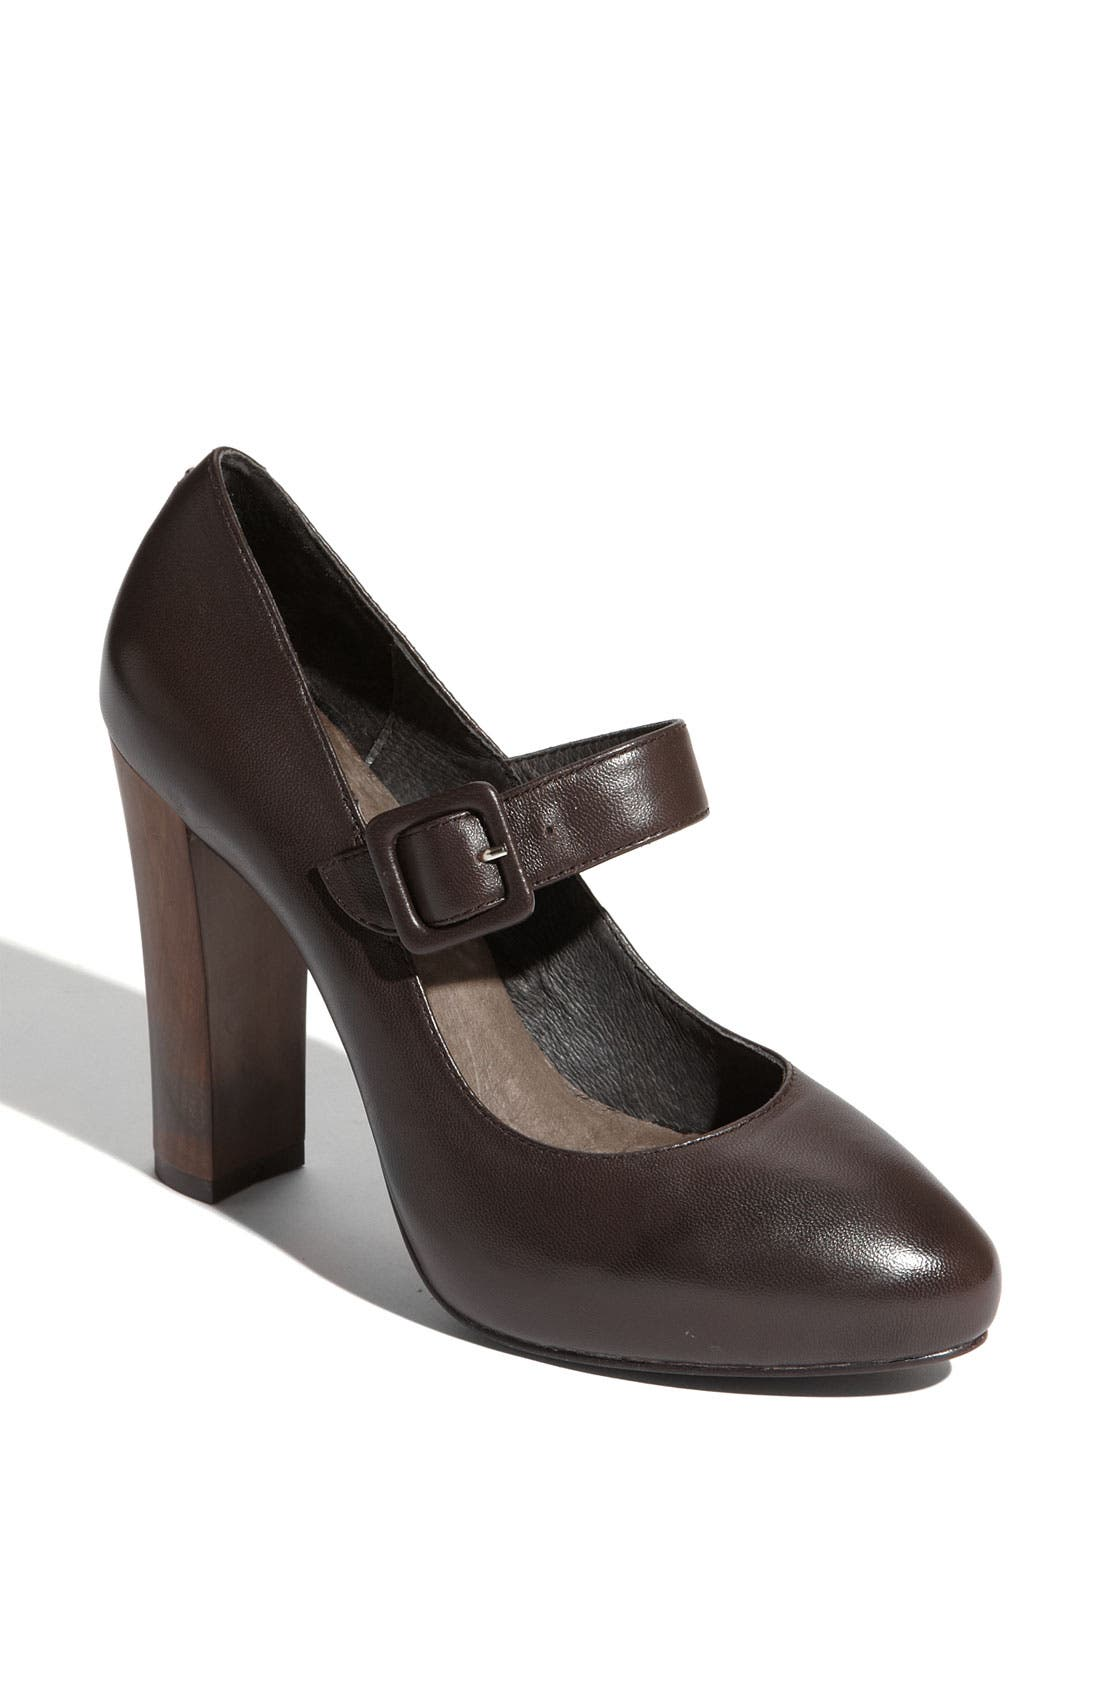 Alternate Image 1 Selected - Joie 'Summer' Mary Jane Pump